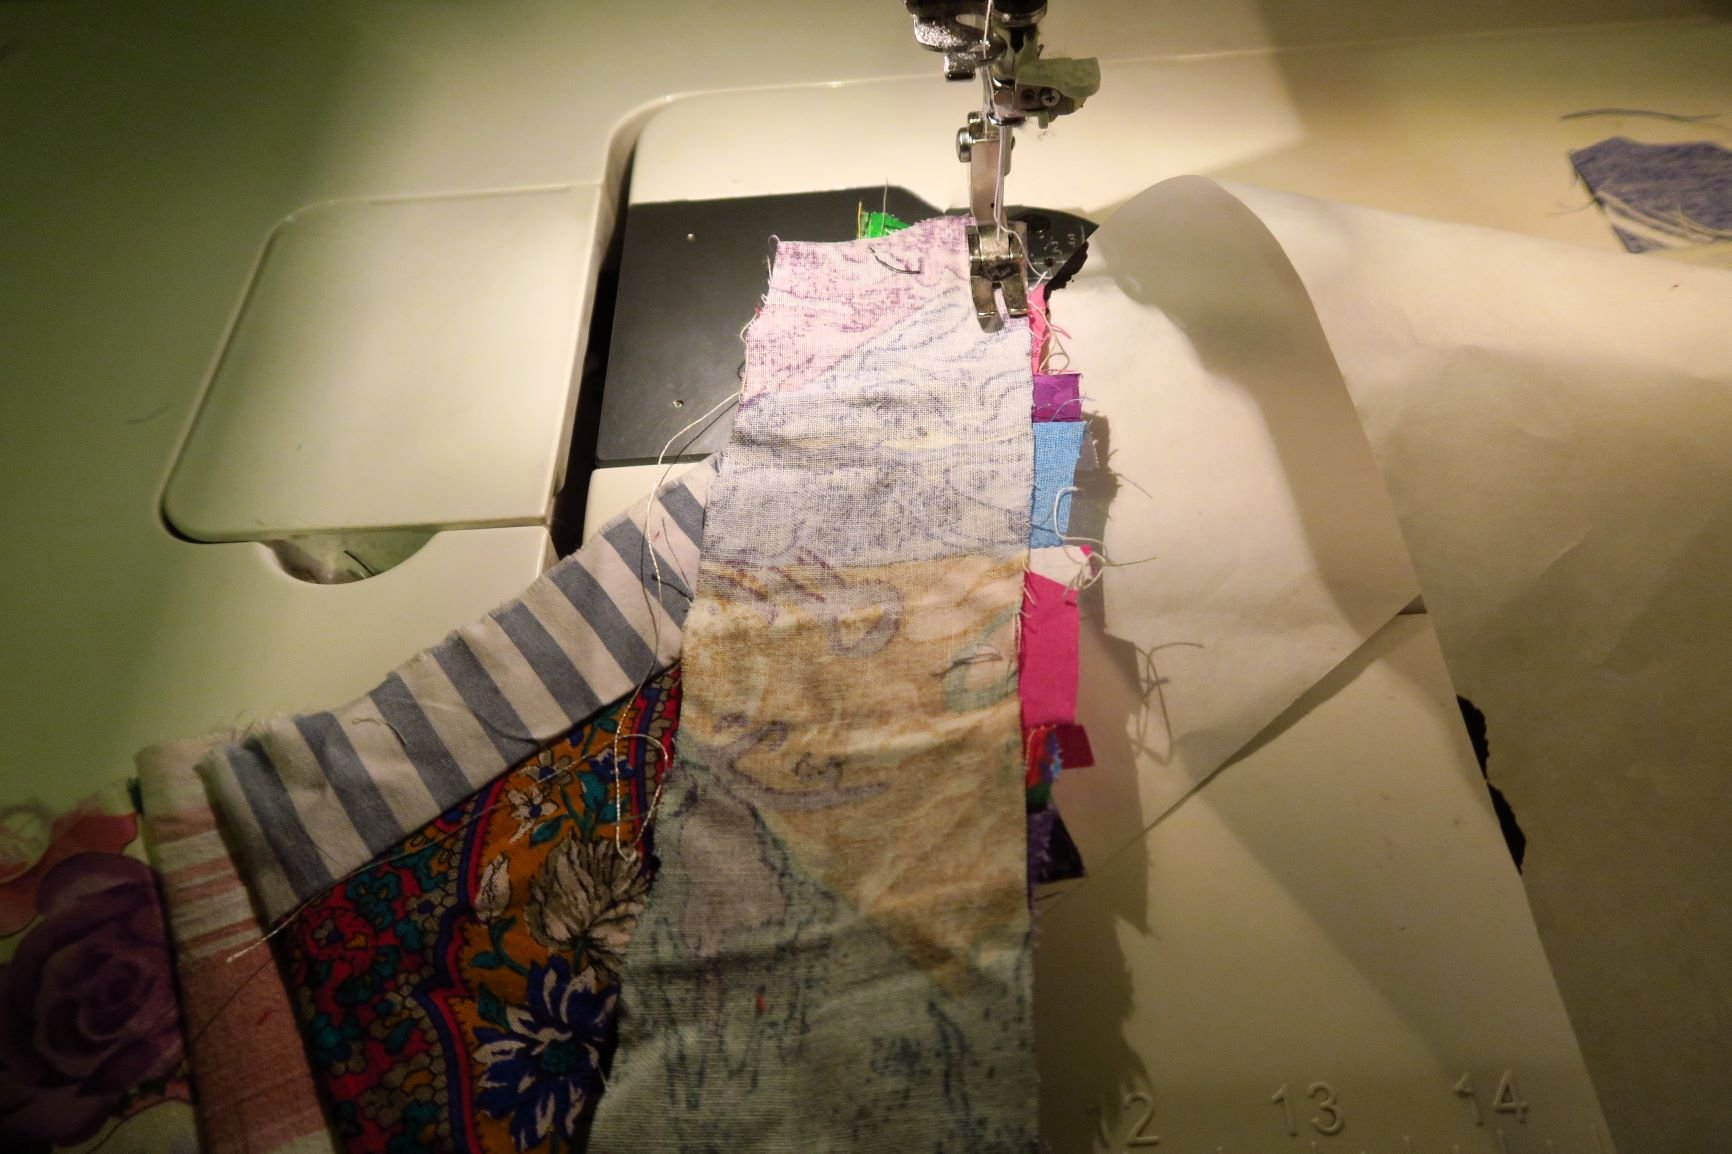 Add another strip and make the seam allowances big enough to catch the uneven places underneath.